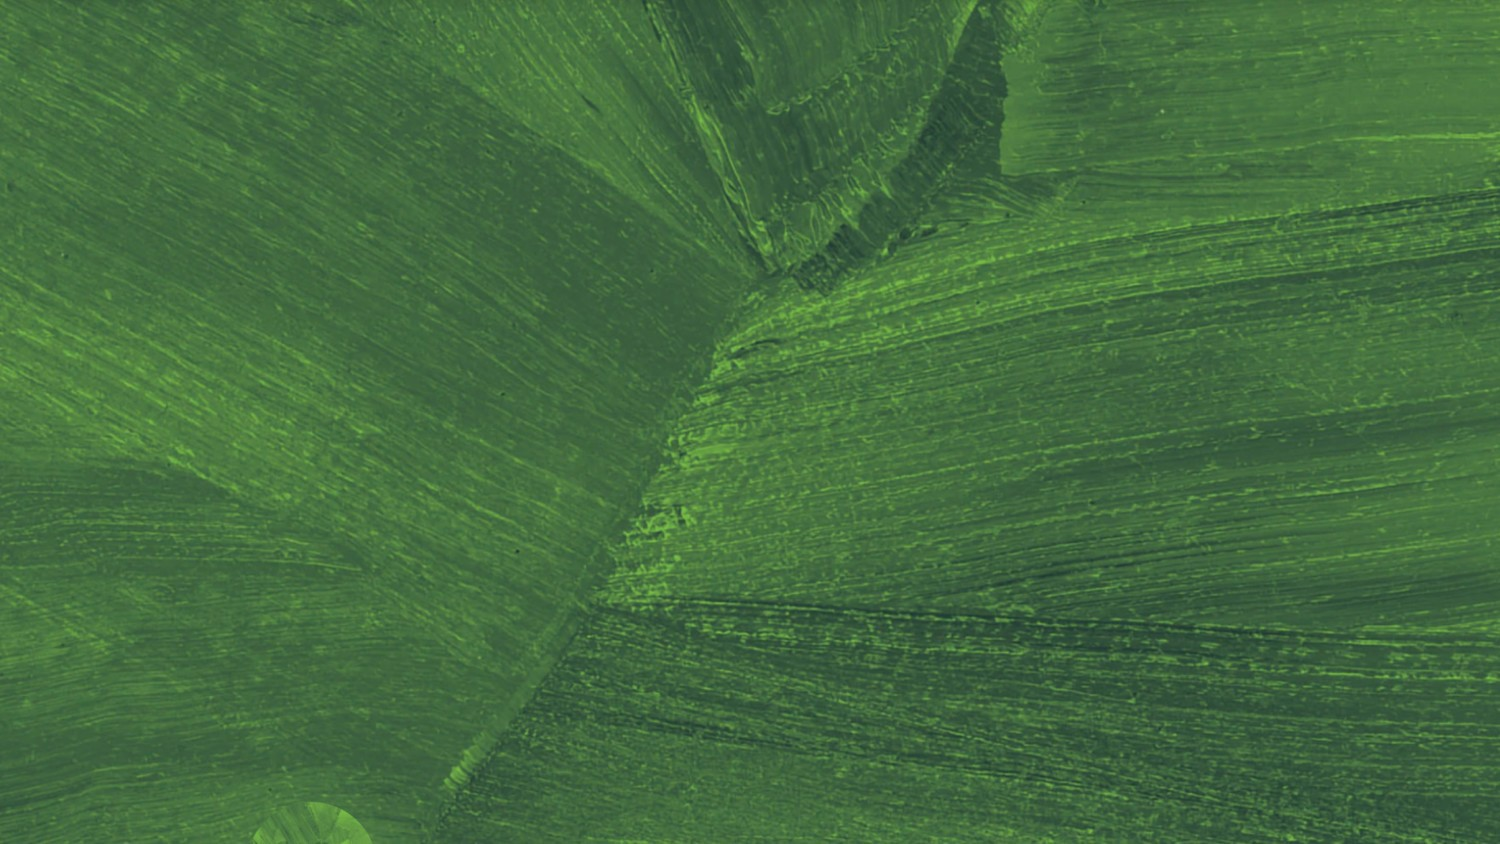 Seventh Generation leaf texture